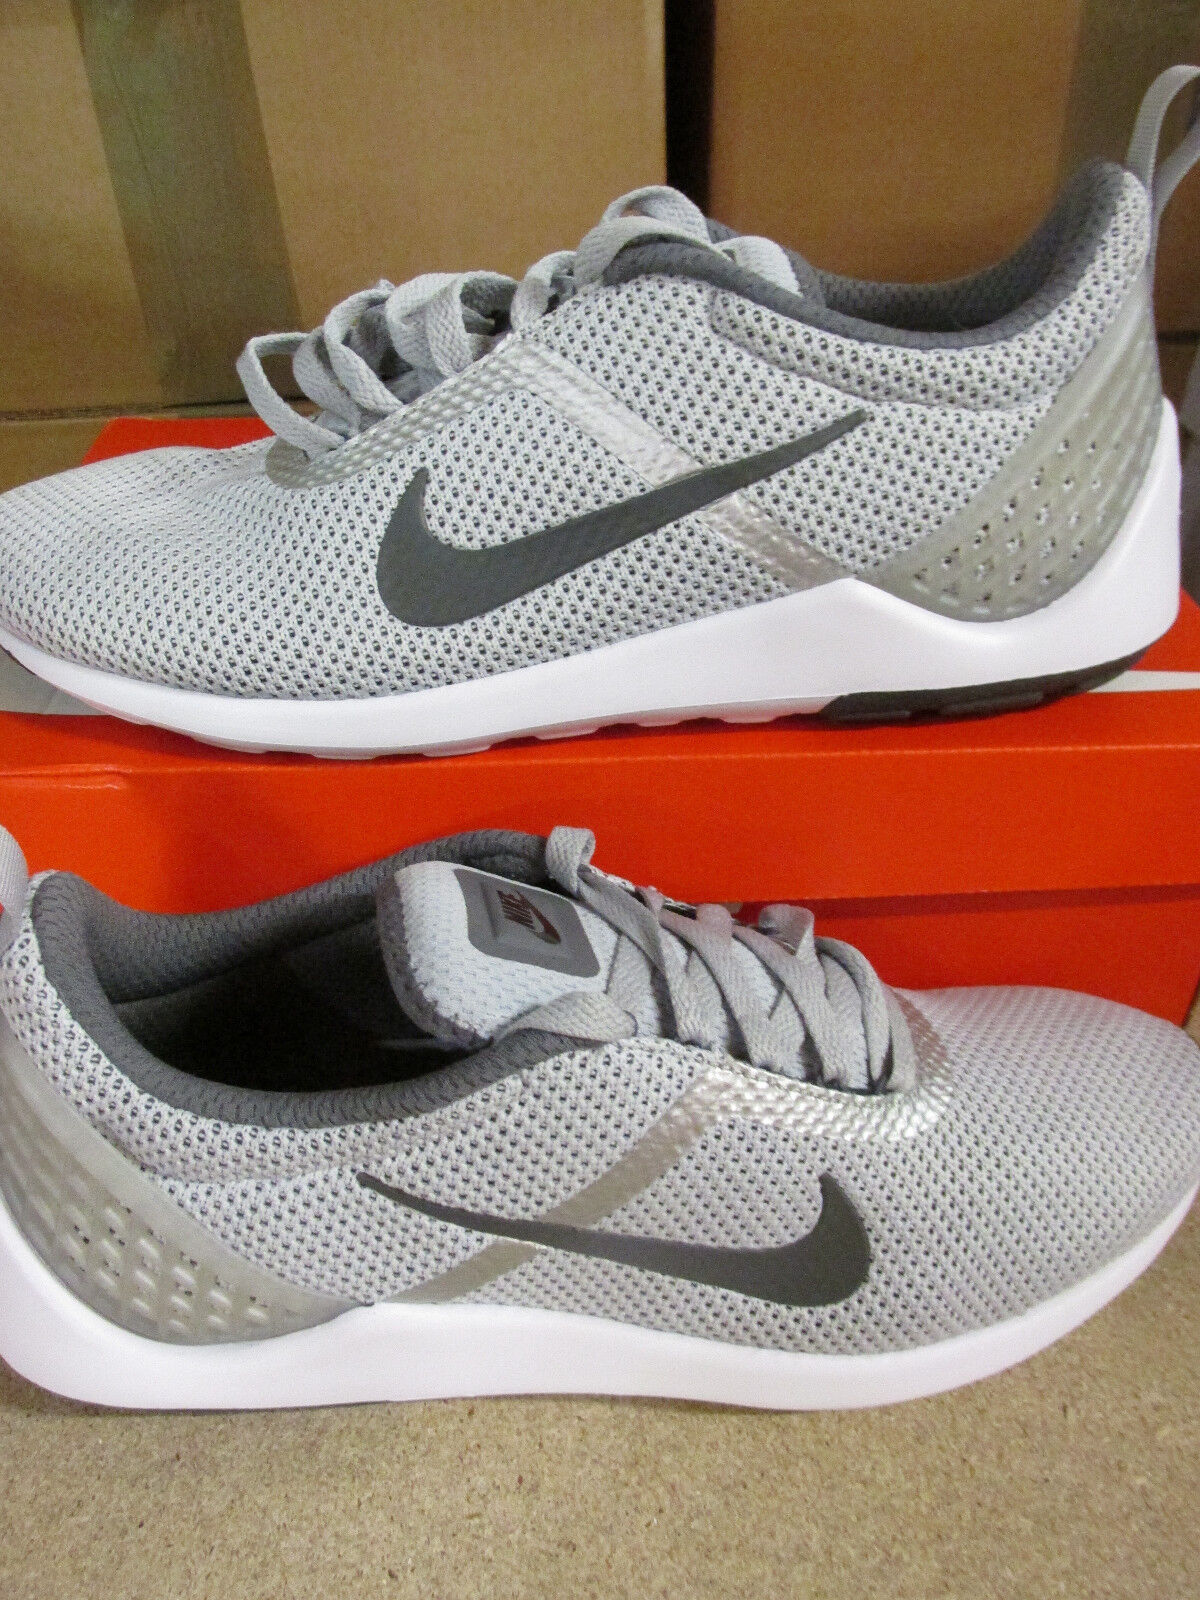 nike lunarestoa 2 essential homme running trainers 811372 002 sneakers chaussures